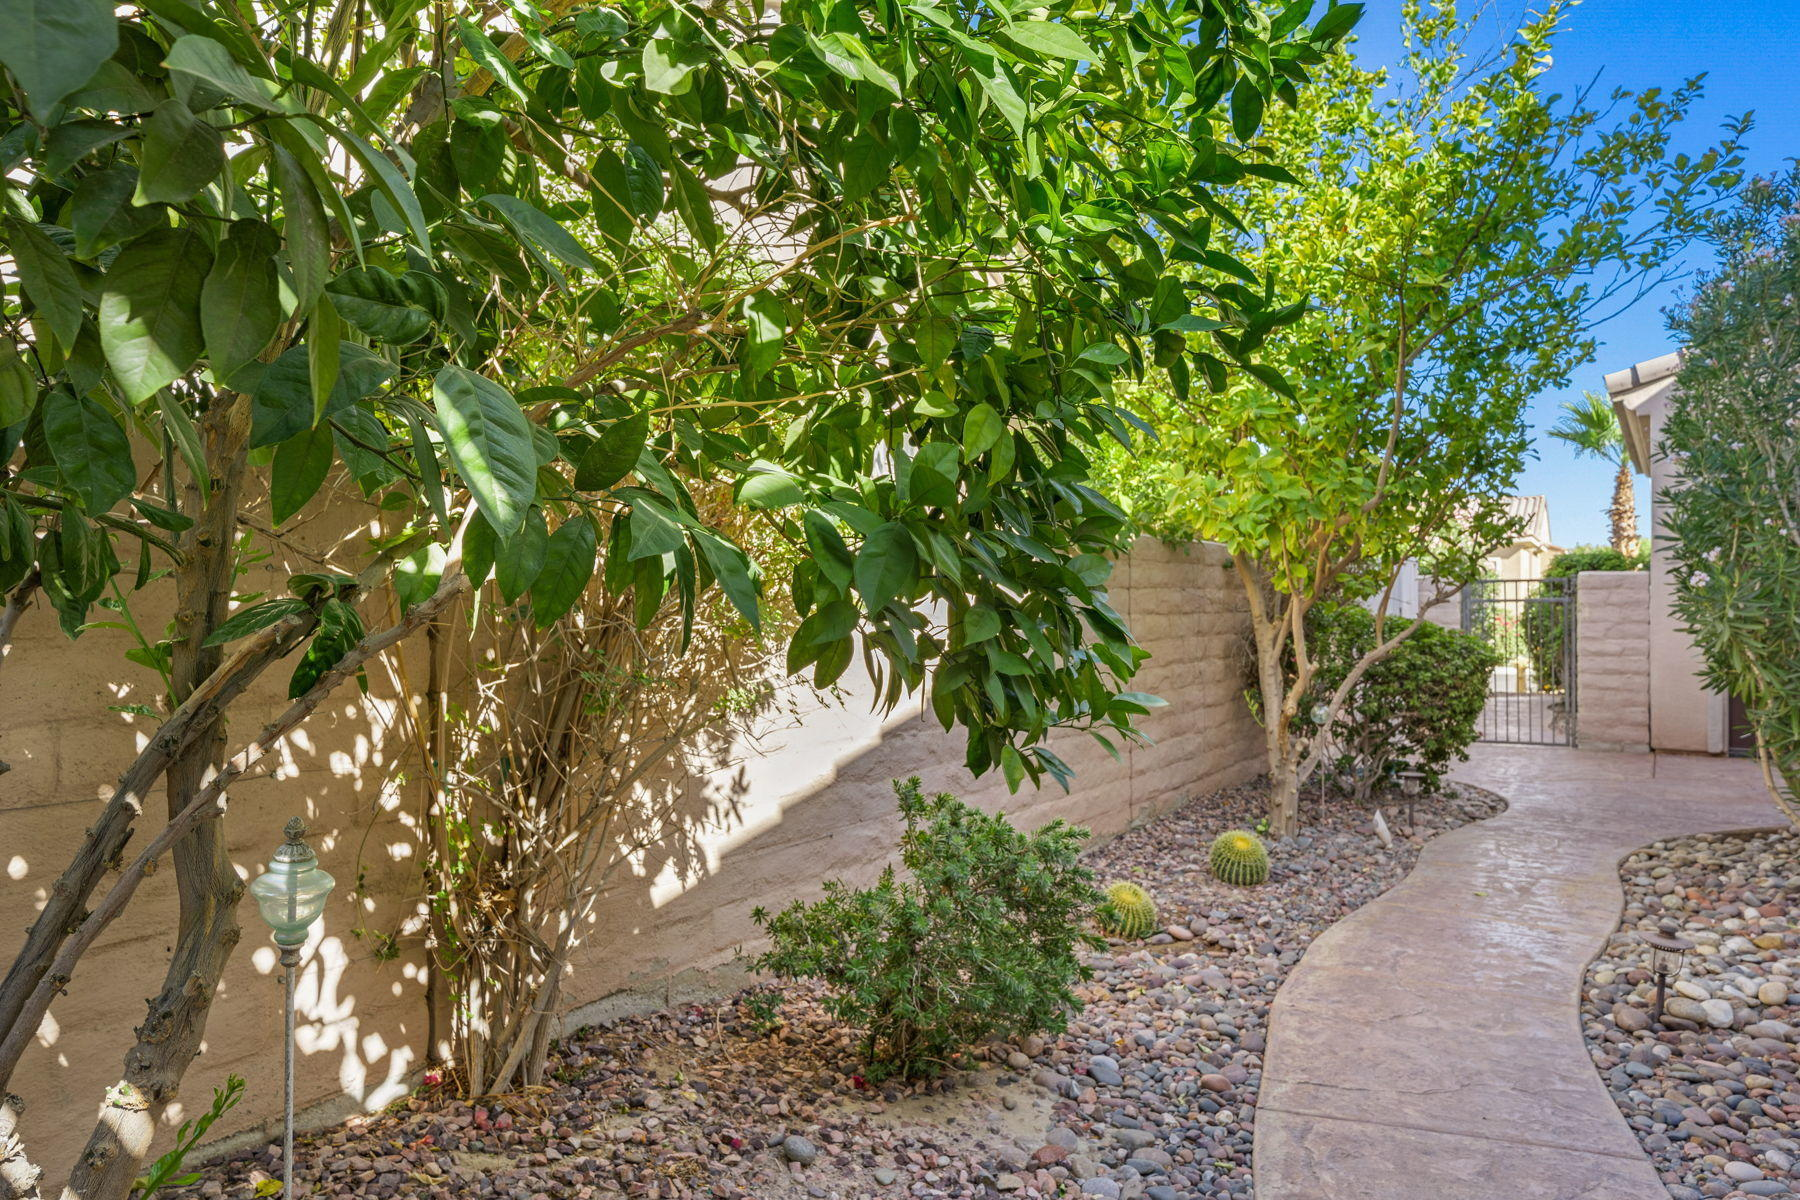 81597 Camino El Triunfo, Indio, California 92203, 2 Bedrooms Bedrooms, ,3 BathroomsBathrooms,Residential,For Sale,81597 Camino El Triunfo,219045588